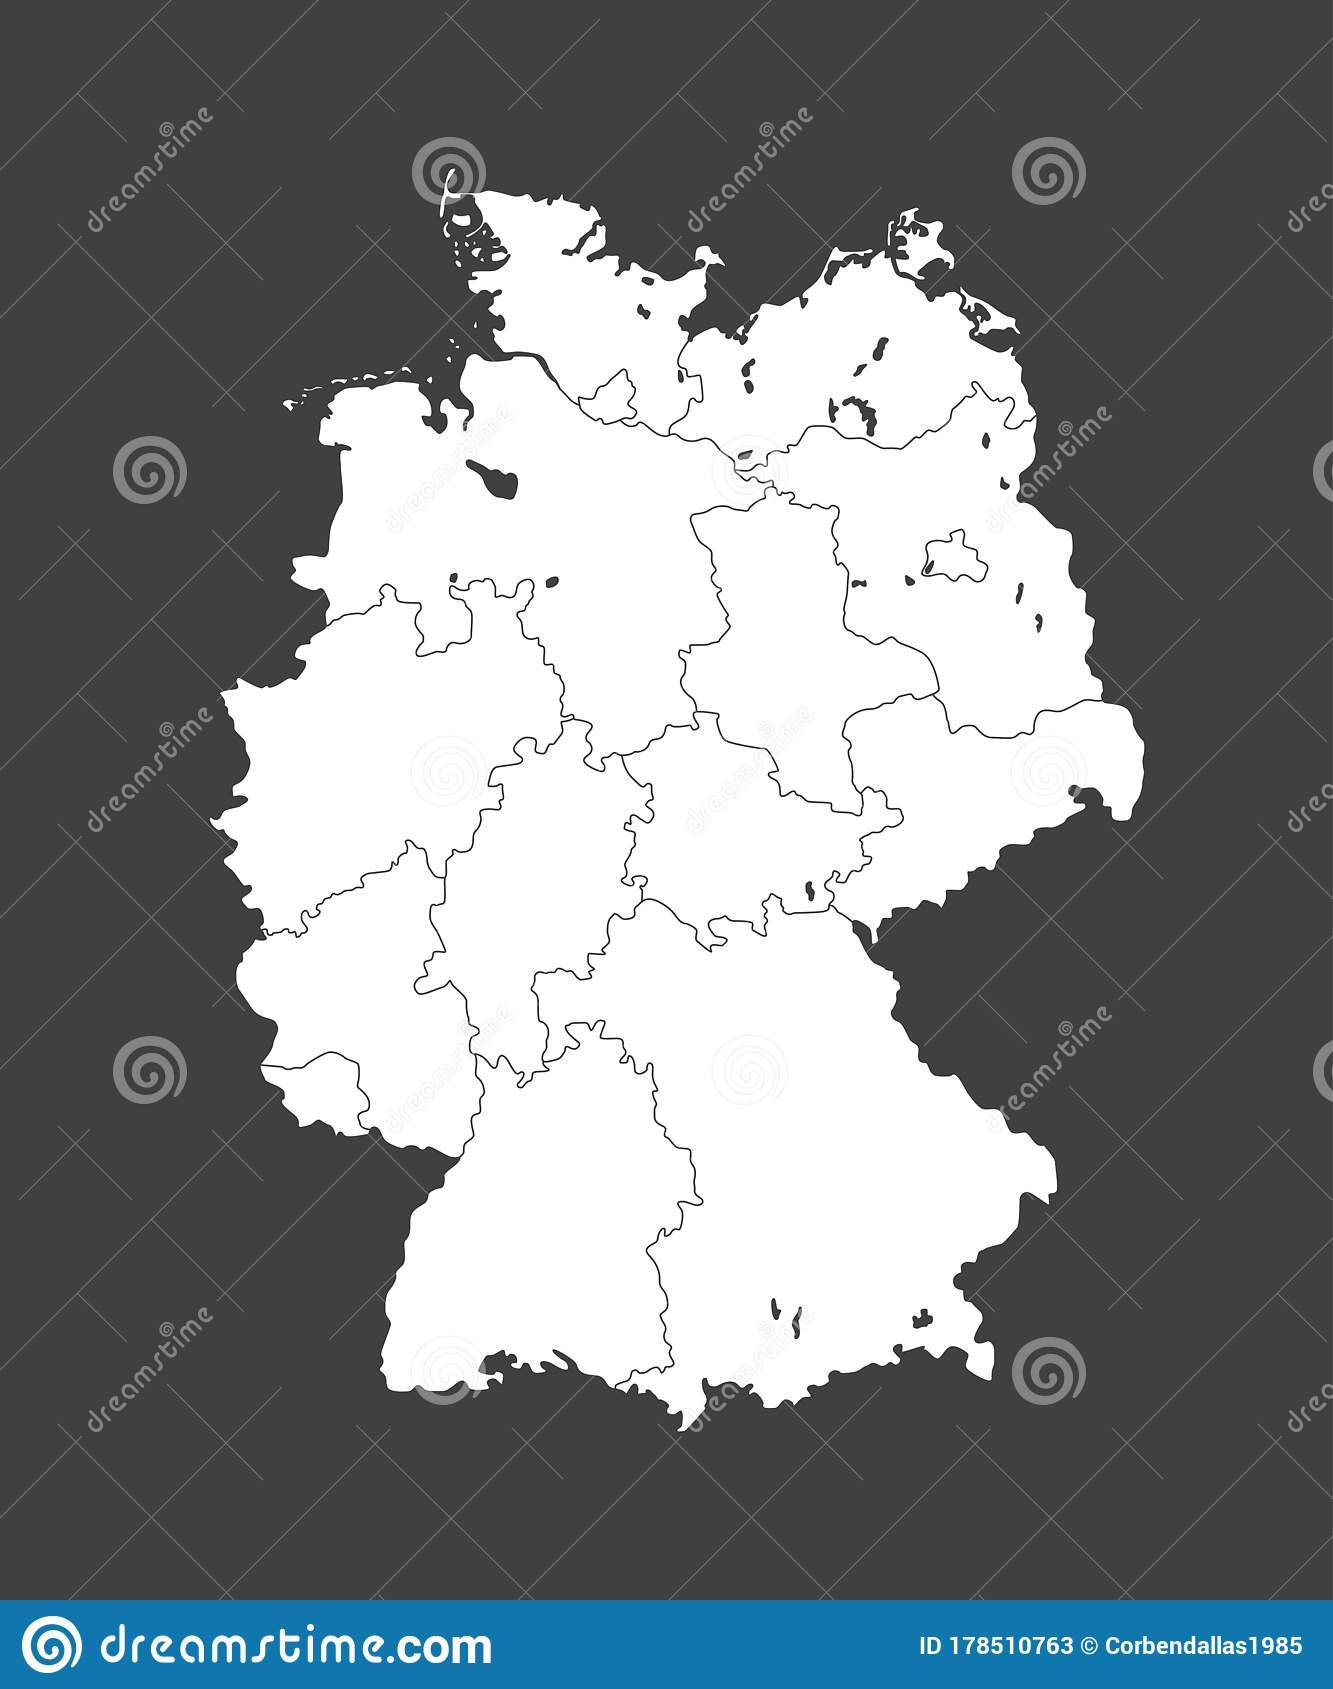 Picture of: Germany Map Europe Country Map Vector Template Stock Vector Illustration Of Germany Location 178510763